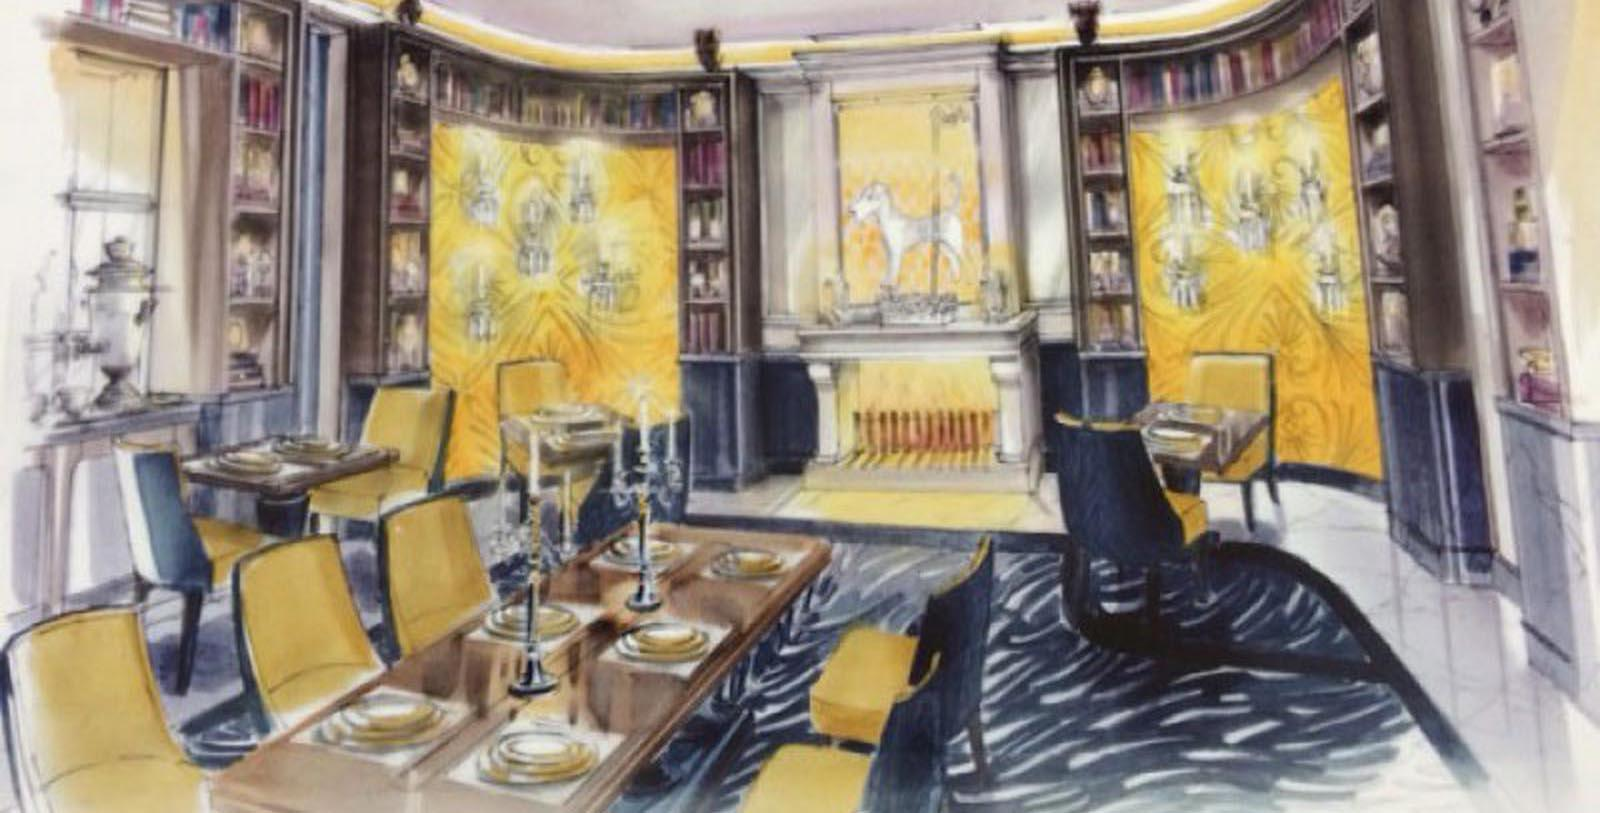 Image of Dining Area in Library Maison Astor Paris, Curio Collection by Hilton, 1907, Member of Historic Hotels Worldwide, in Paris, France, Discover